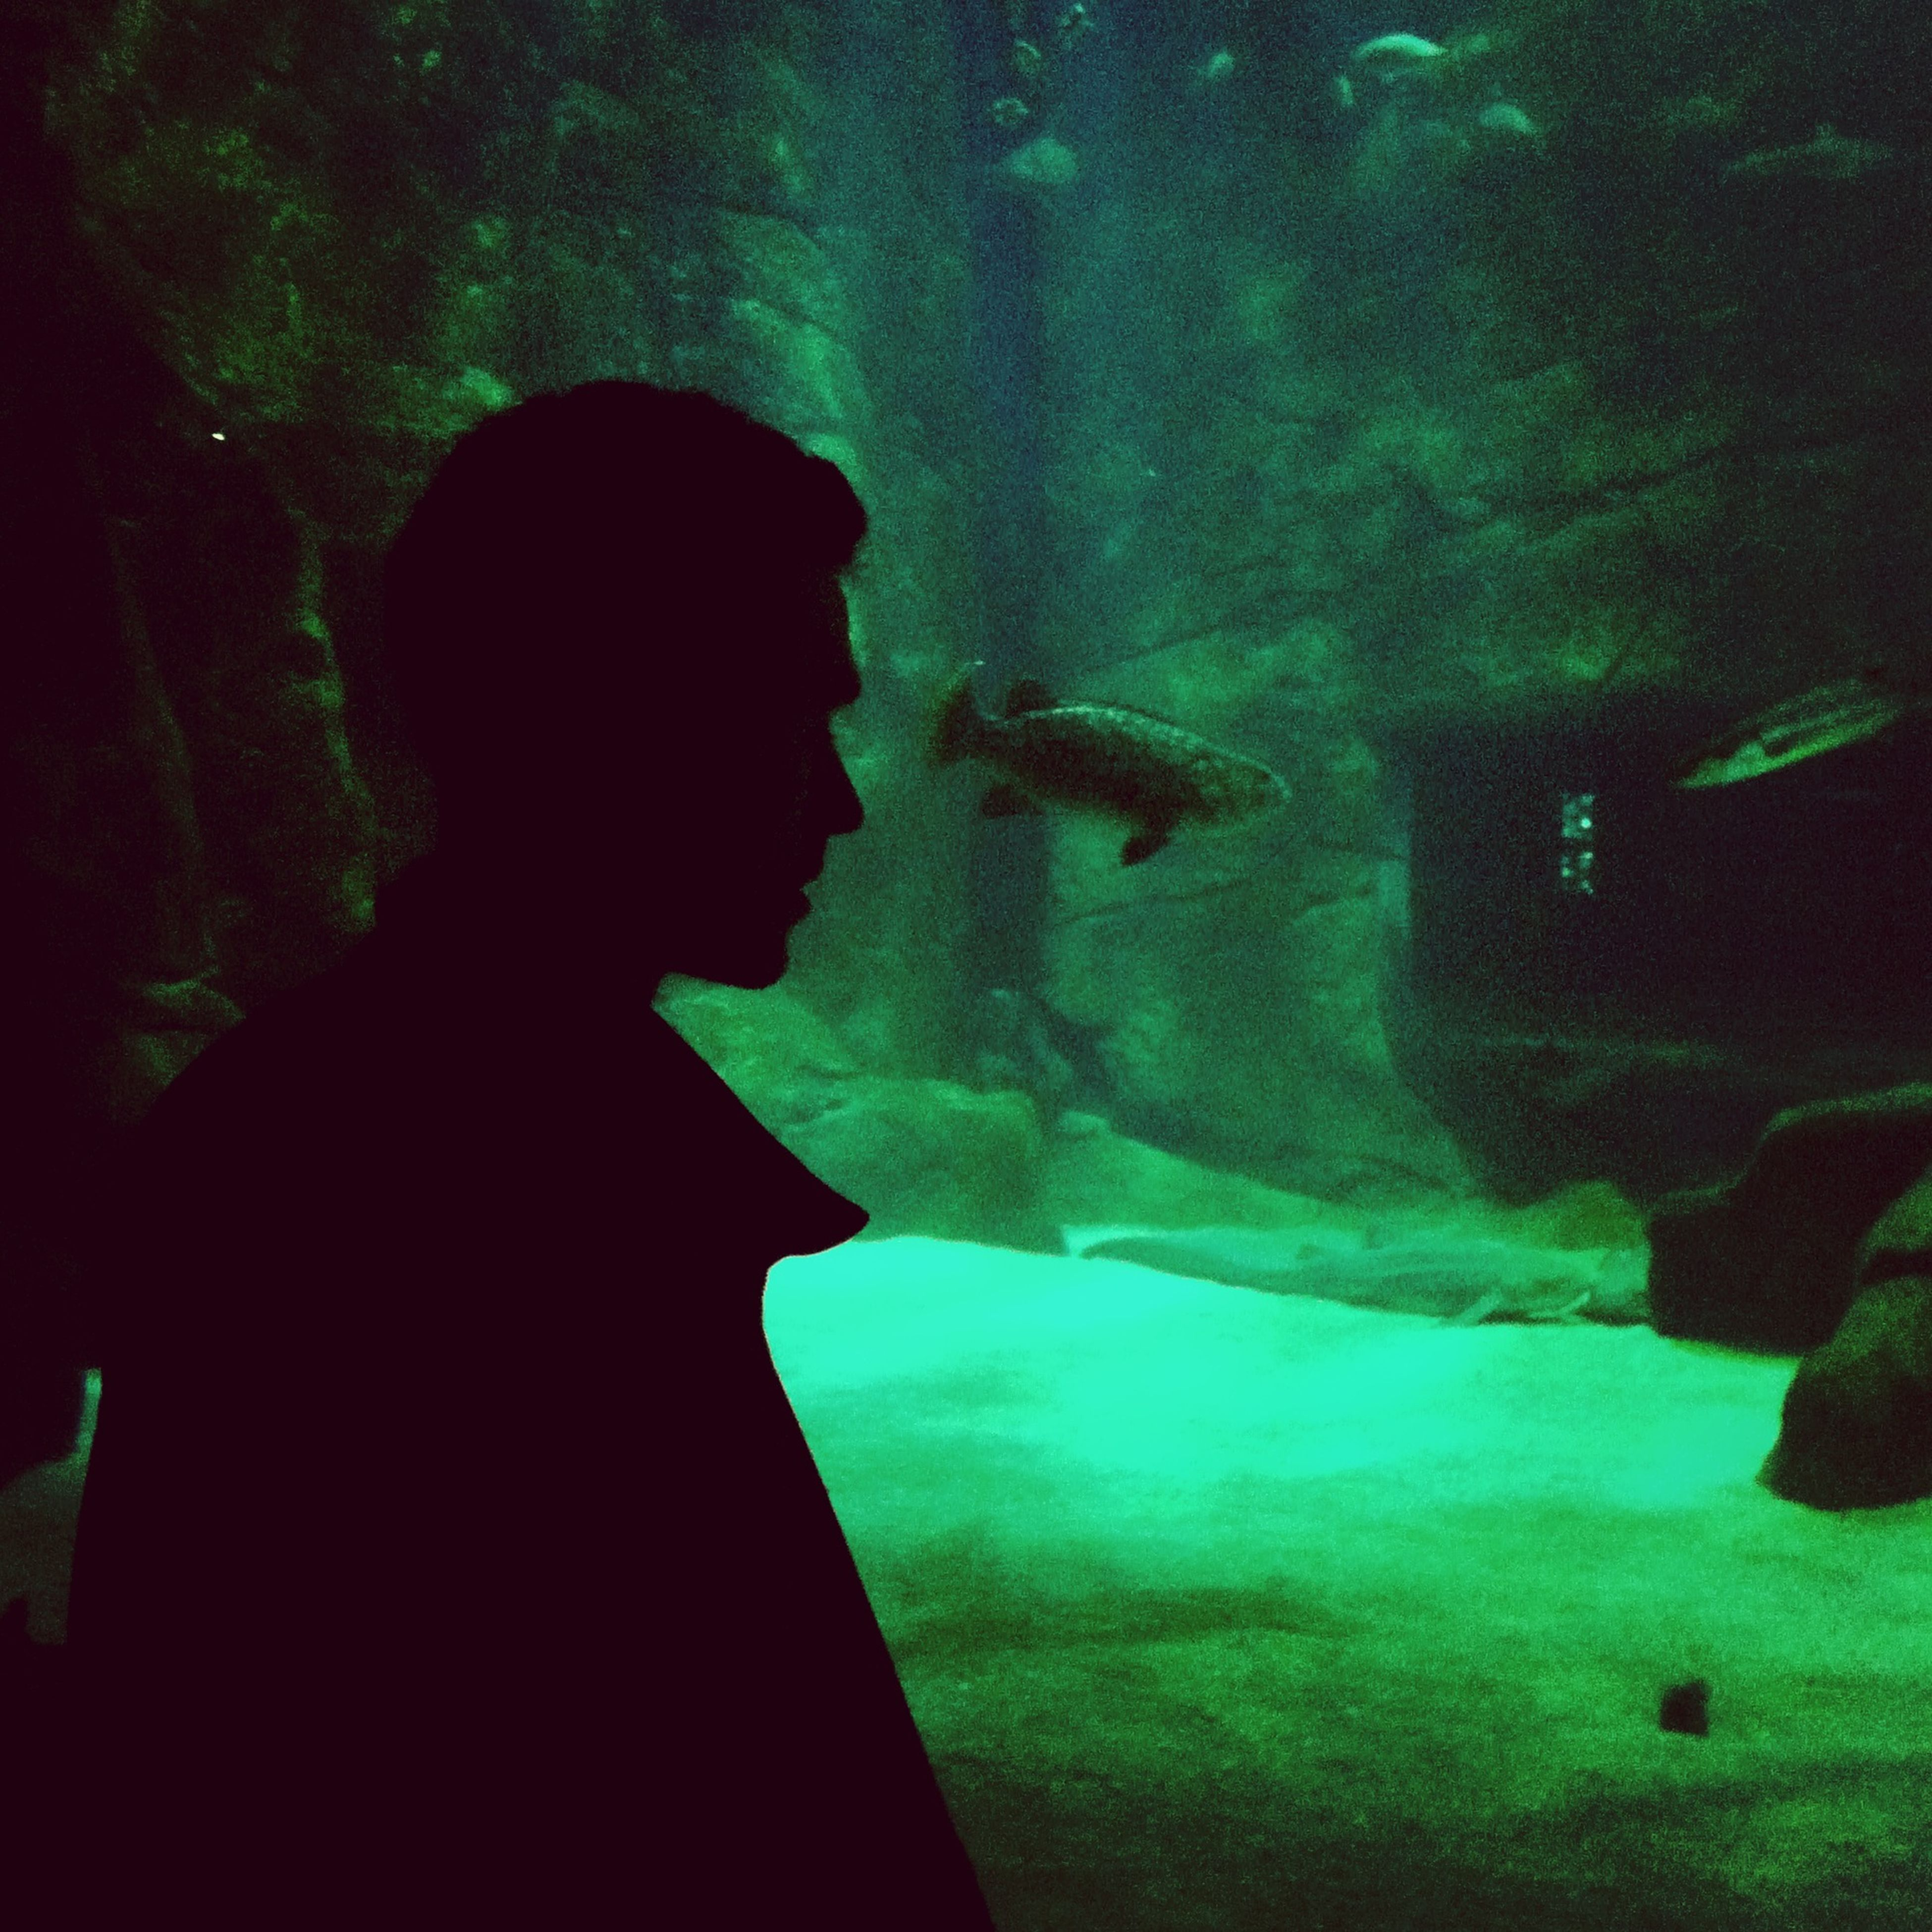 underwater, water, swimming, silhouette, blue, animals in the wild, undersea, night, sea, wildlife, one person, aquarium, indoors, animal themes, nature, sea life, fish, beauty in nature, transparent, rock - object